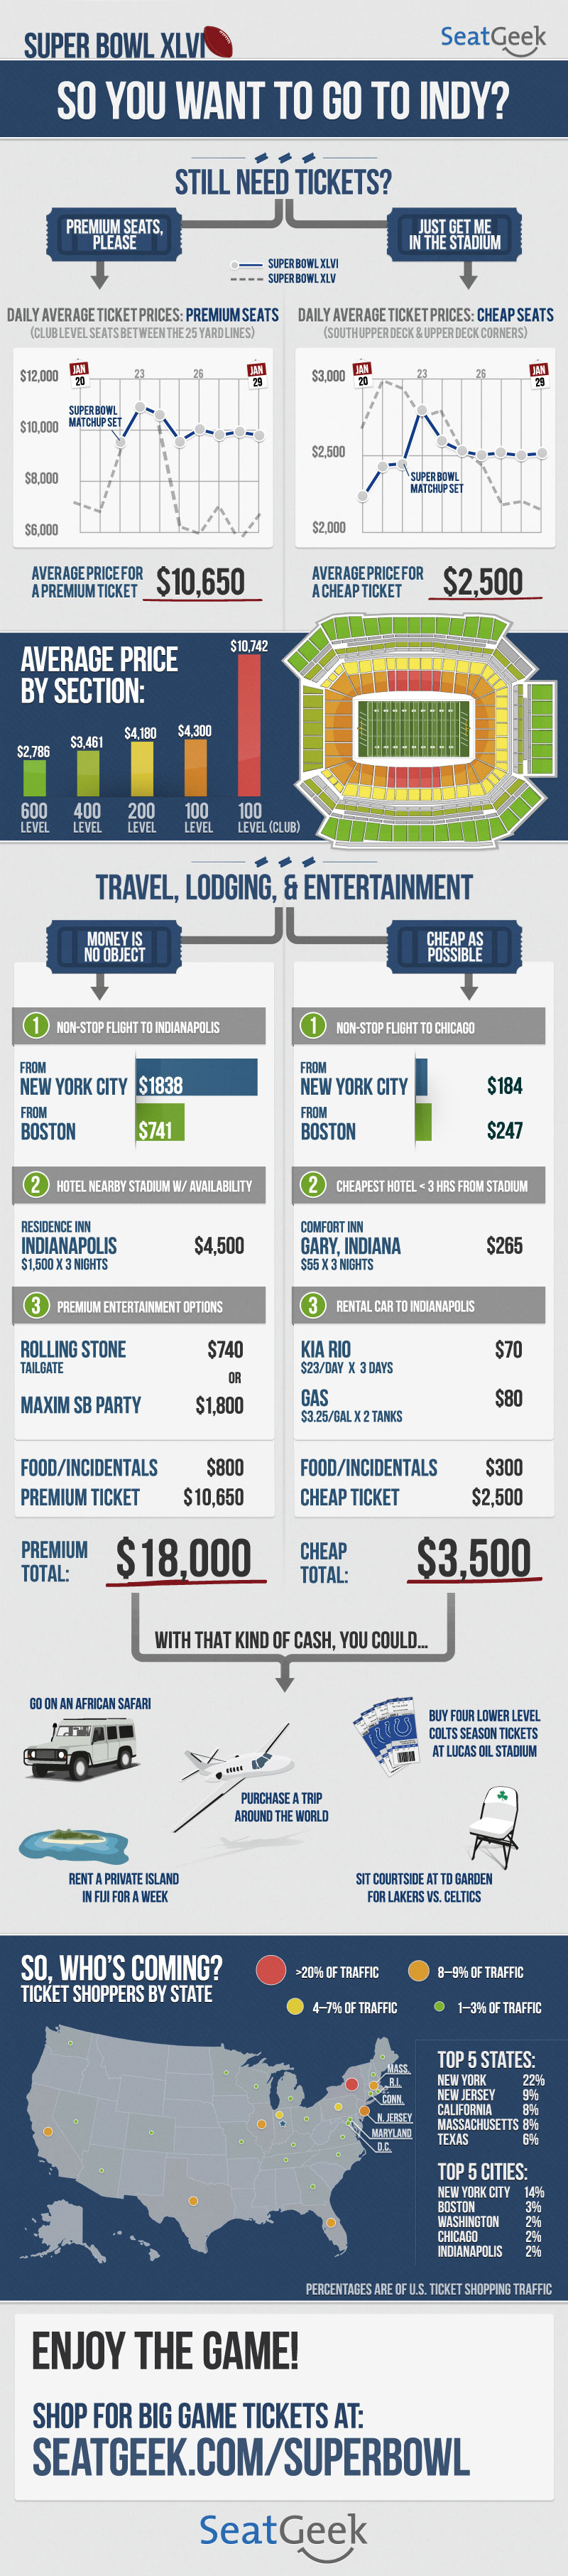 What It Will Cost You To Go To Superbowl XLVI?